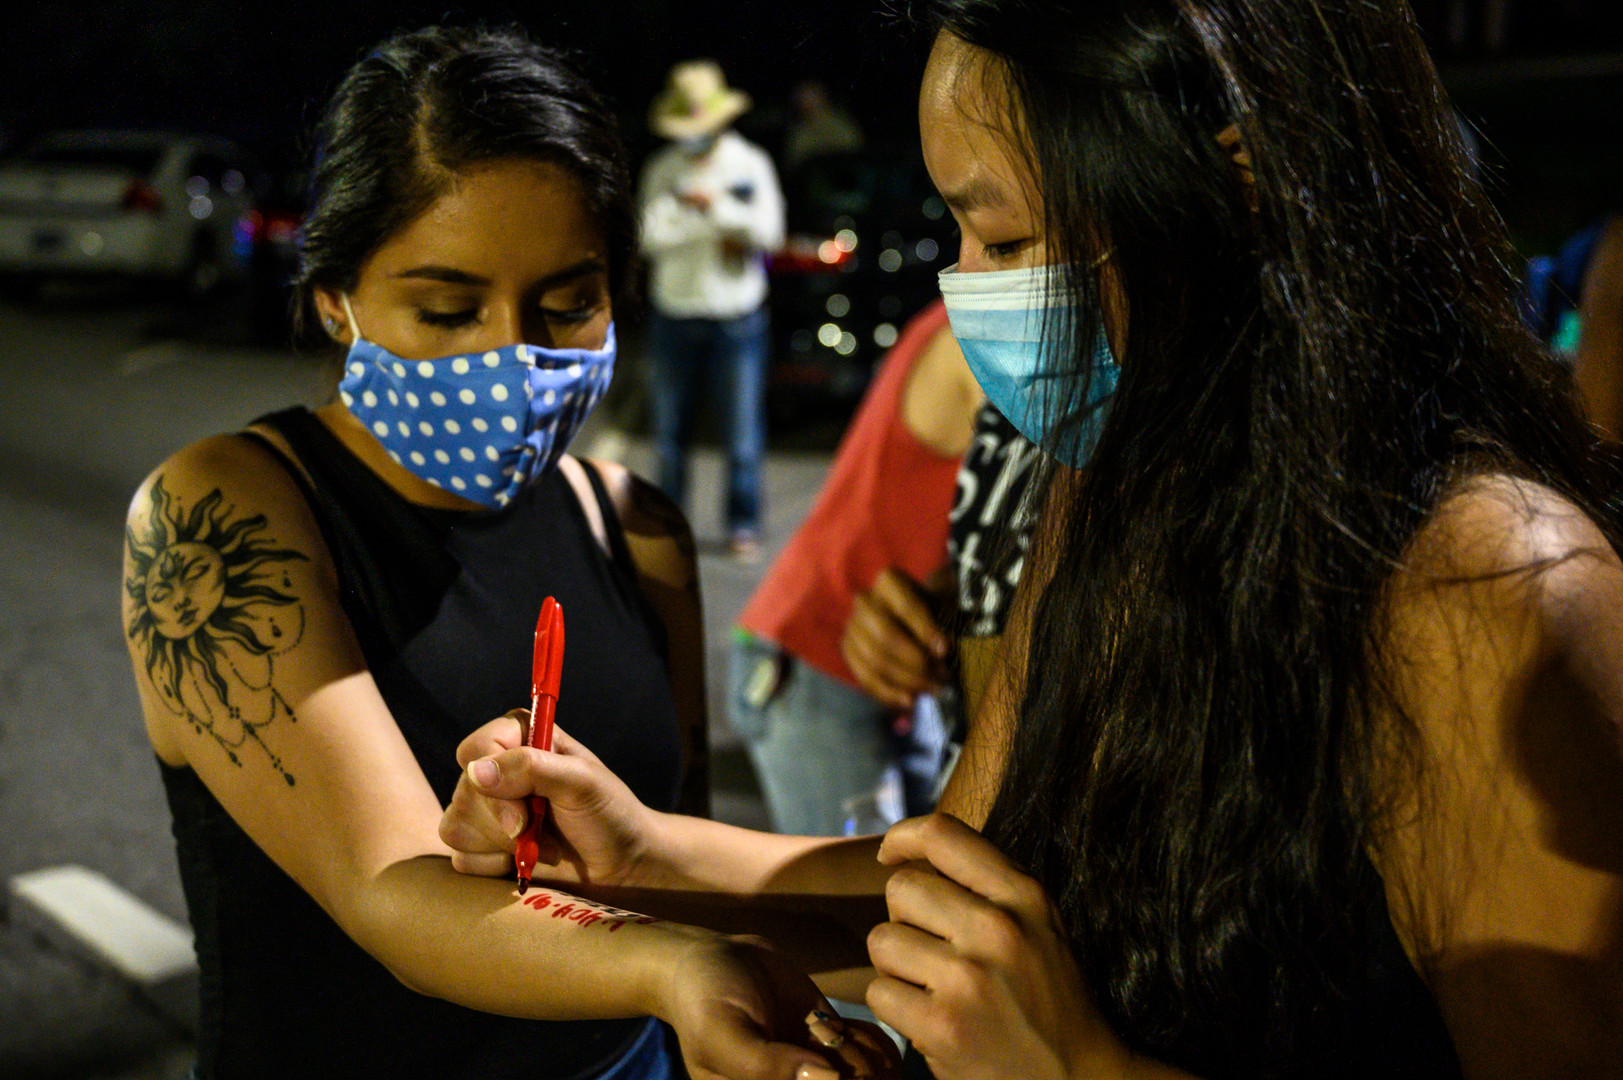 Protesters write emergency numbers and lawyers' contacts on each others' arms in Athens, Georgia on Sunday, May 31, 2020. Surrounded by police and armored vehicles, the protesters prepared to be arrested and tear gassed while protesting racial injustice following the death of George Floyd in Minneapolis six days earlier.